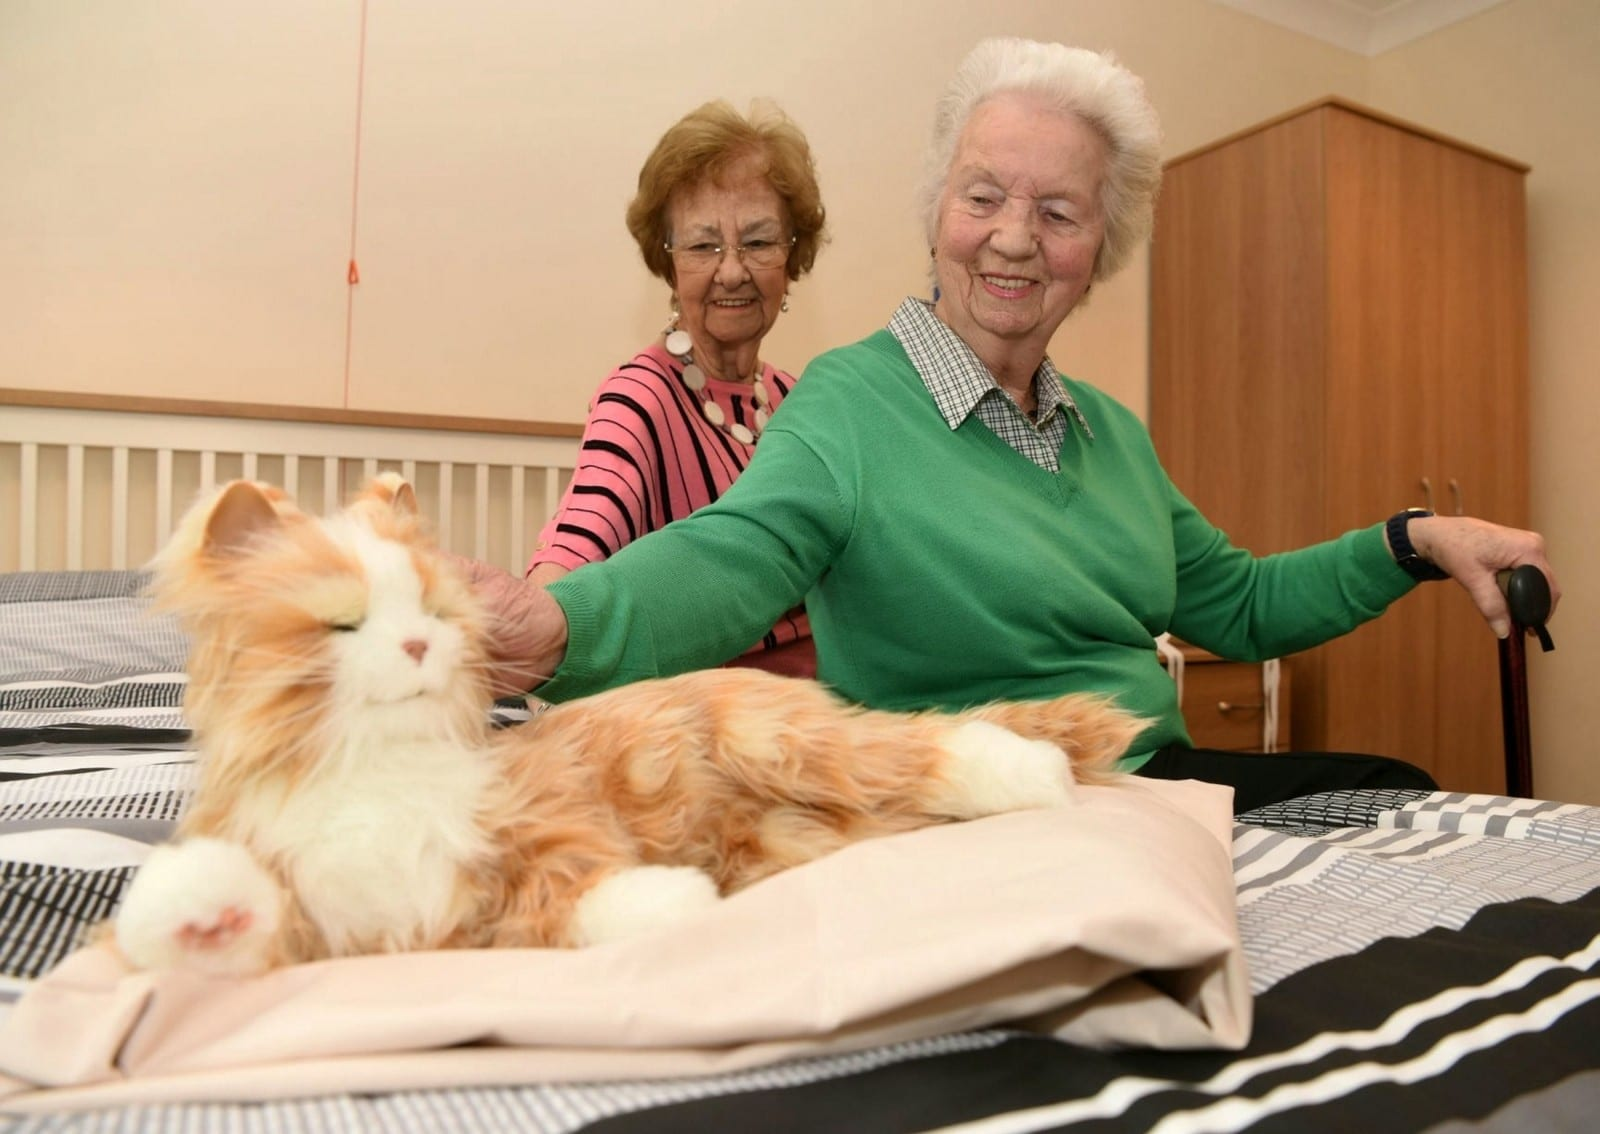 Carers At An Old Folks' Home Are Helping Elderly Residents Fight Loneliness - With Cat & Dog ROBOTS